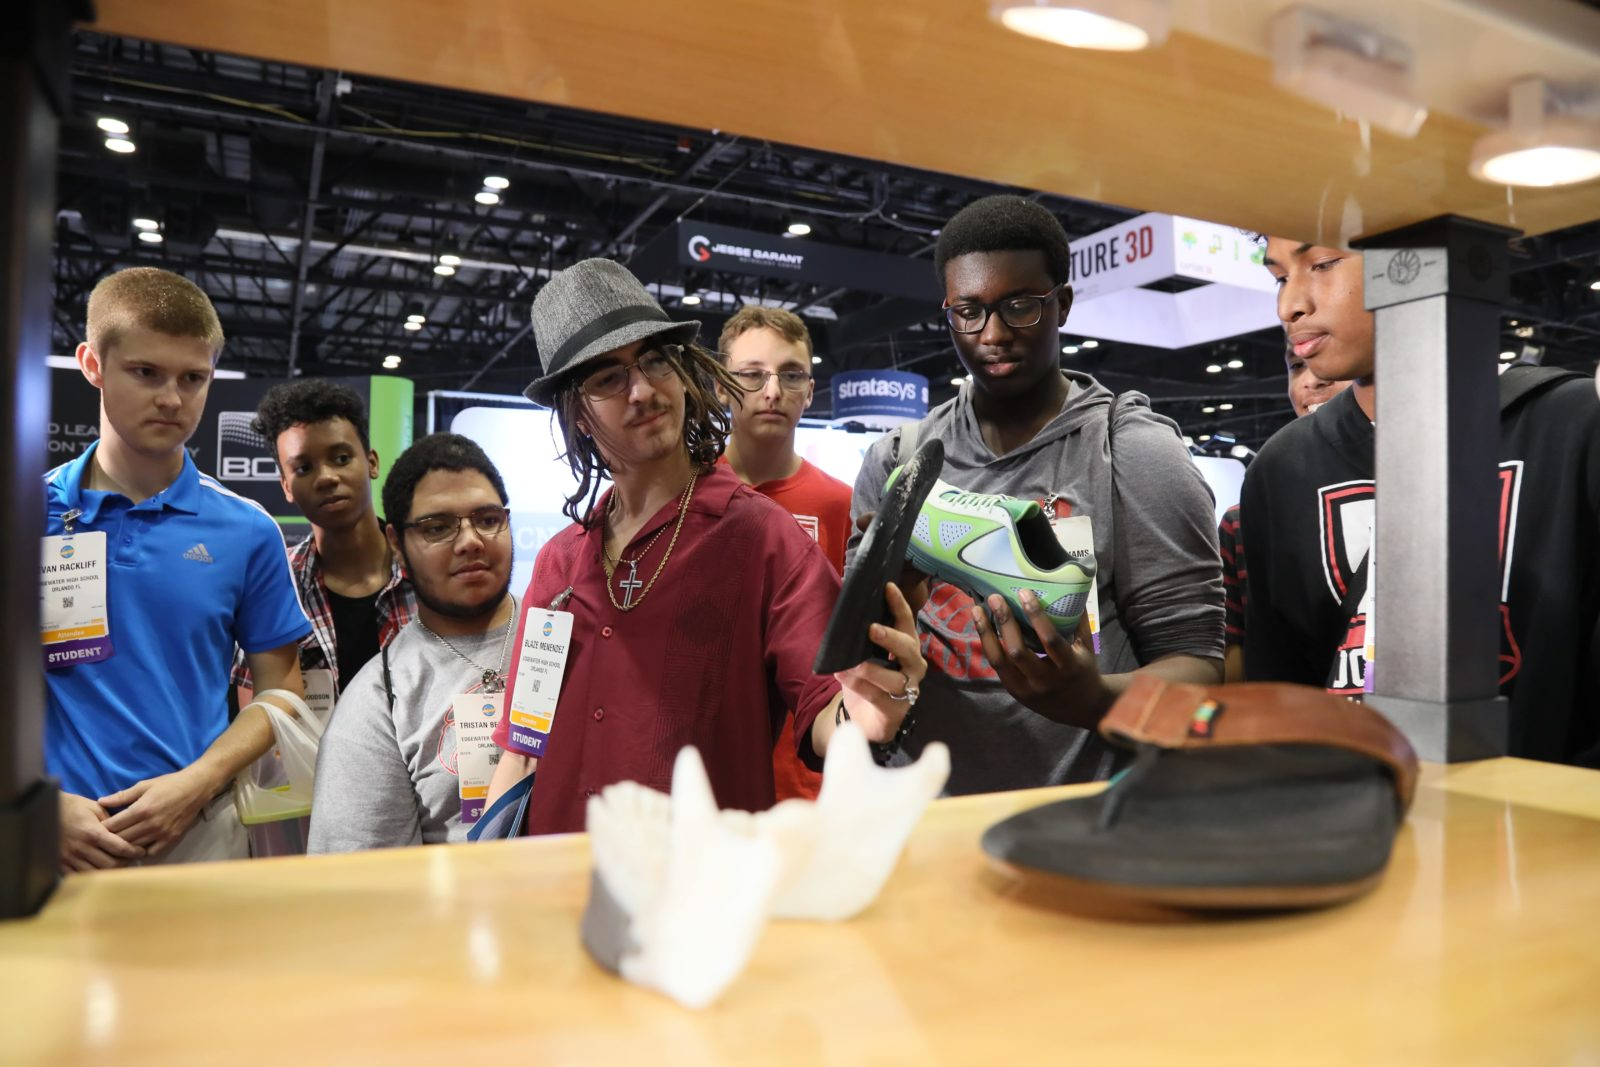 A group looks at an exhibit in the 3D/4D Printing zone